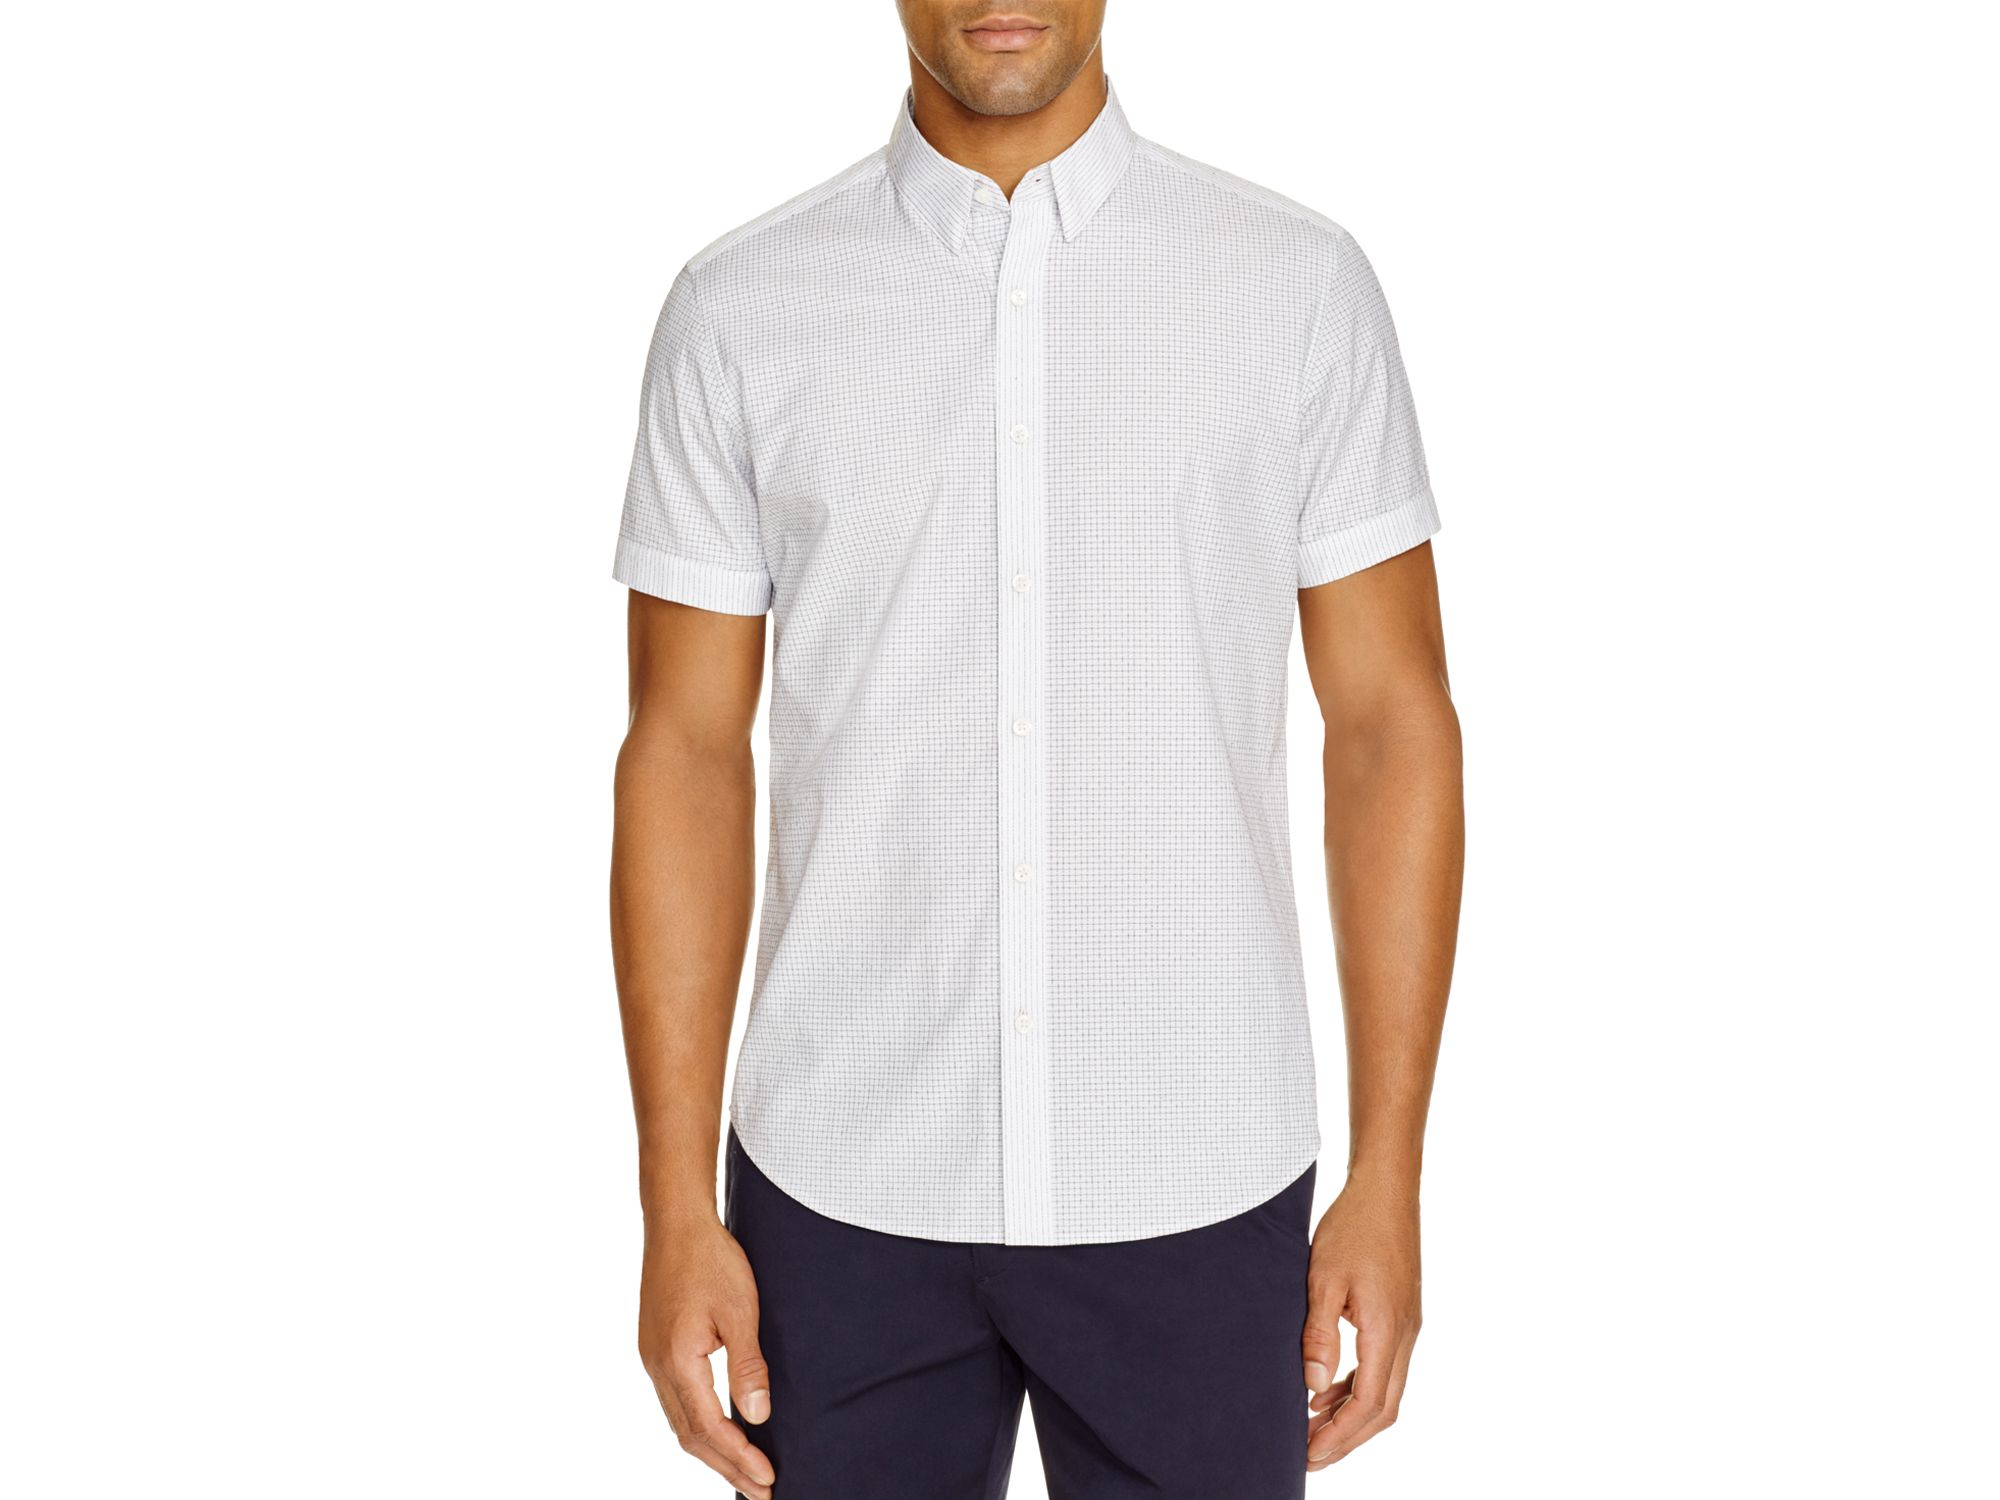 Oxford shirt by Hollister, Smart/casual personified, Button-down collar, Chest pocket, Hollister logo, Button fastening, Slim fit, A narrow cut that sits close to the body.